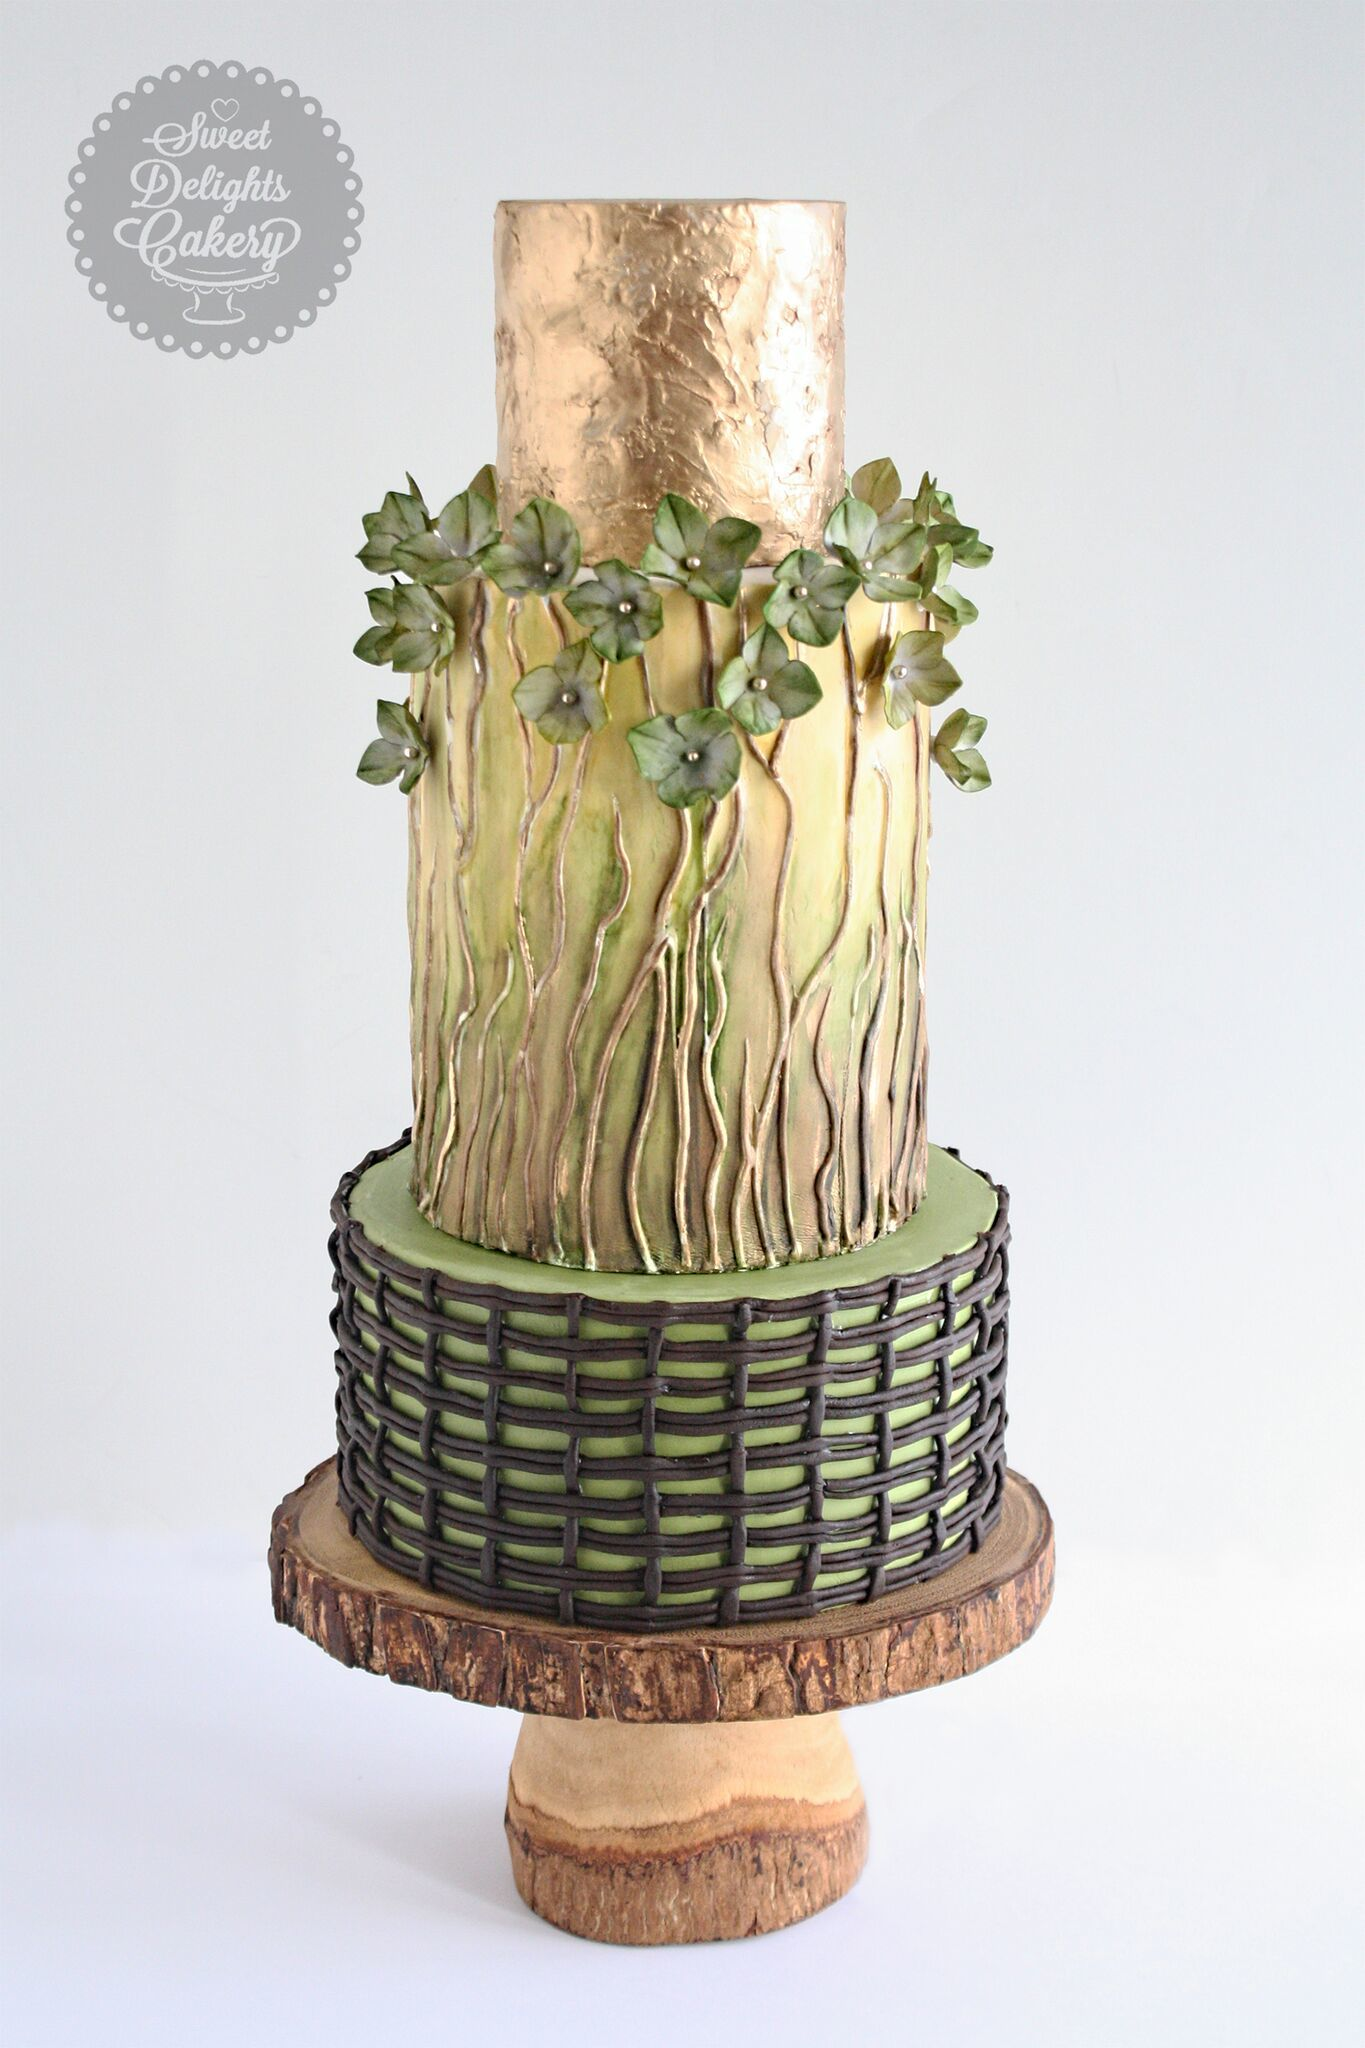 Gold with Green fondant wedding cake